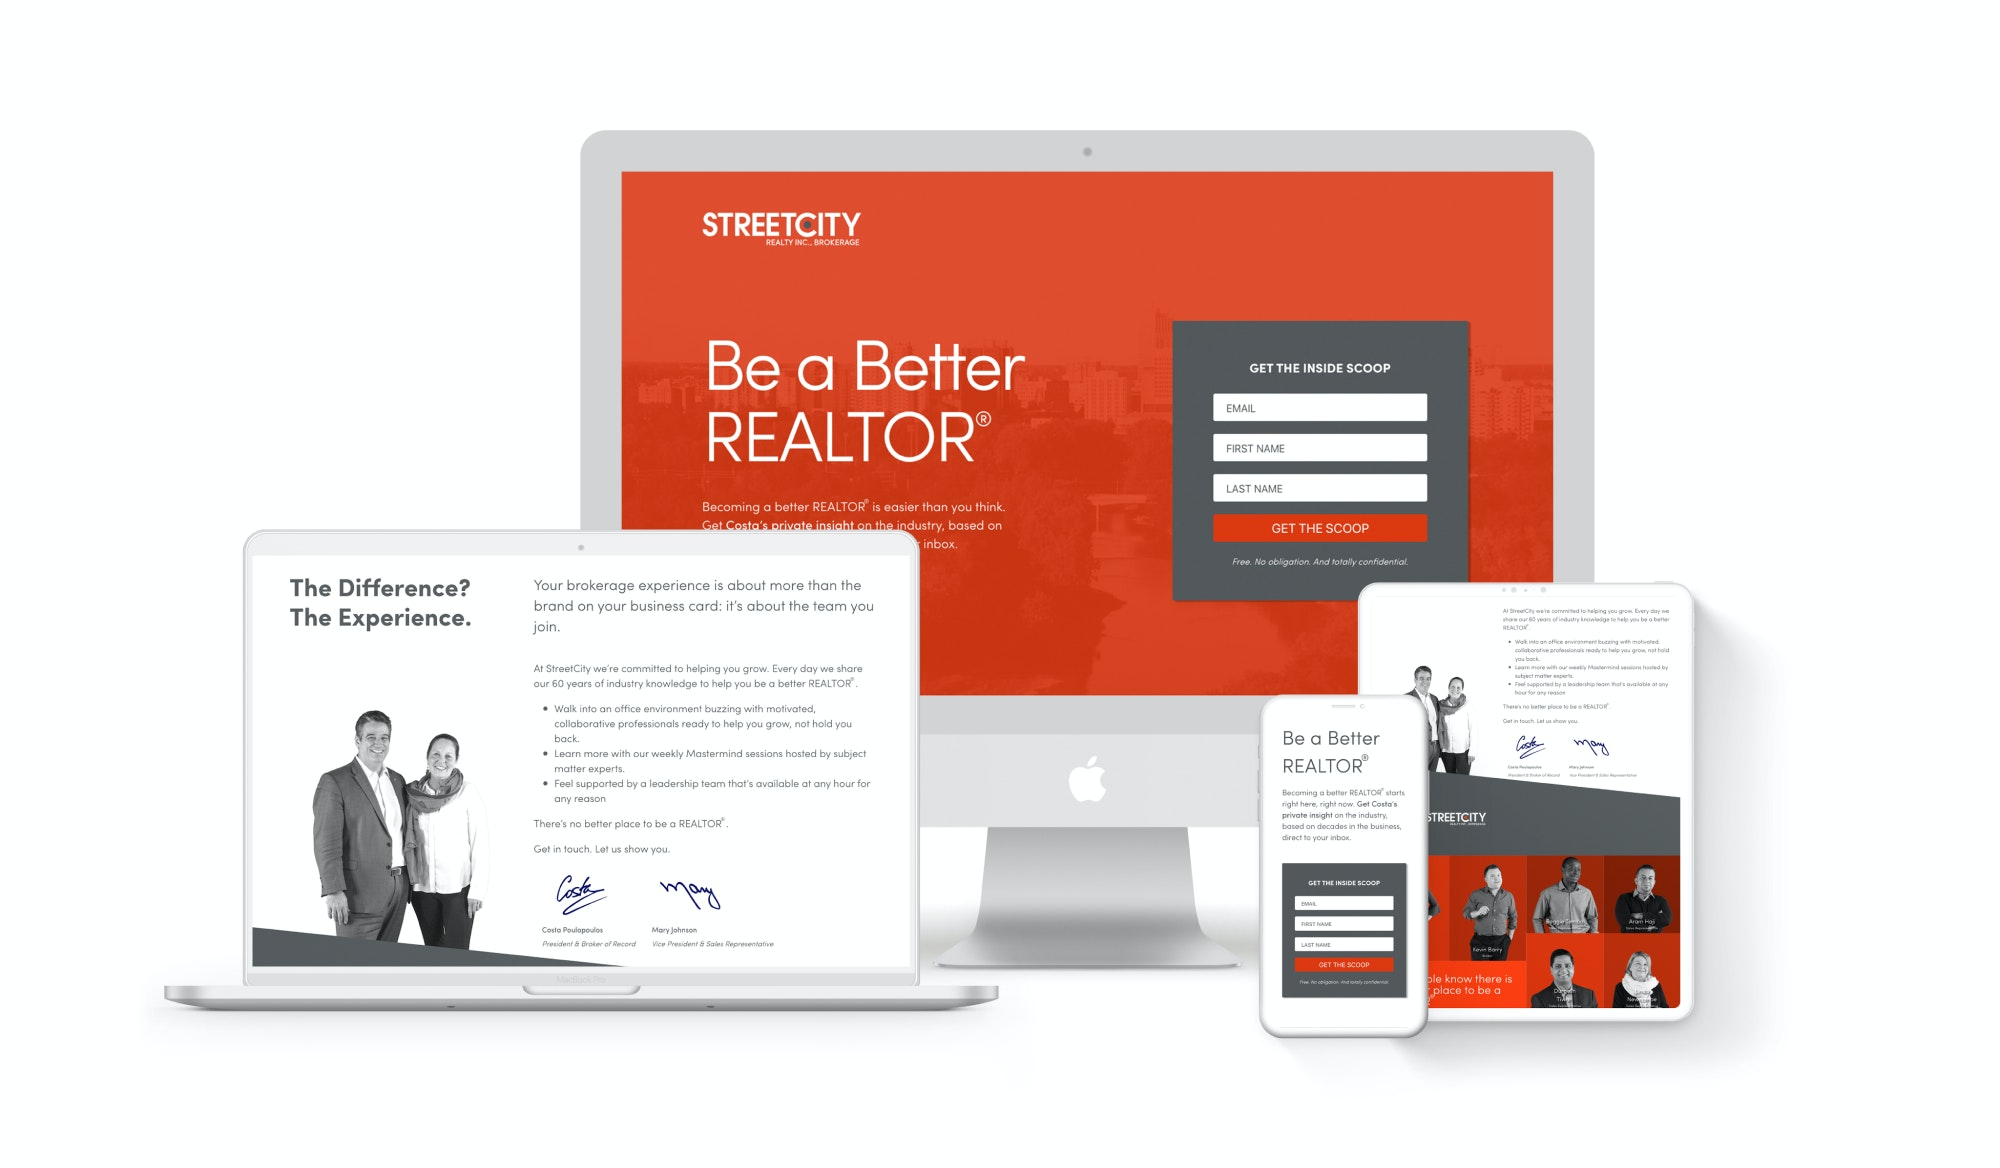 StreetCity campaign landing page on multiple screen sizes